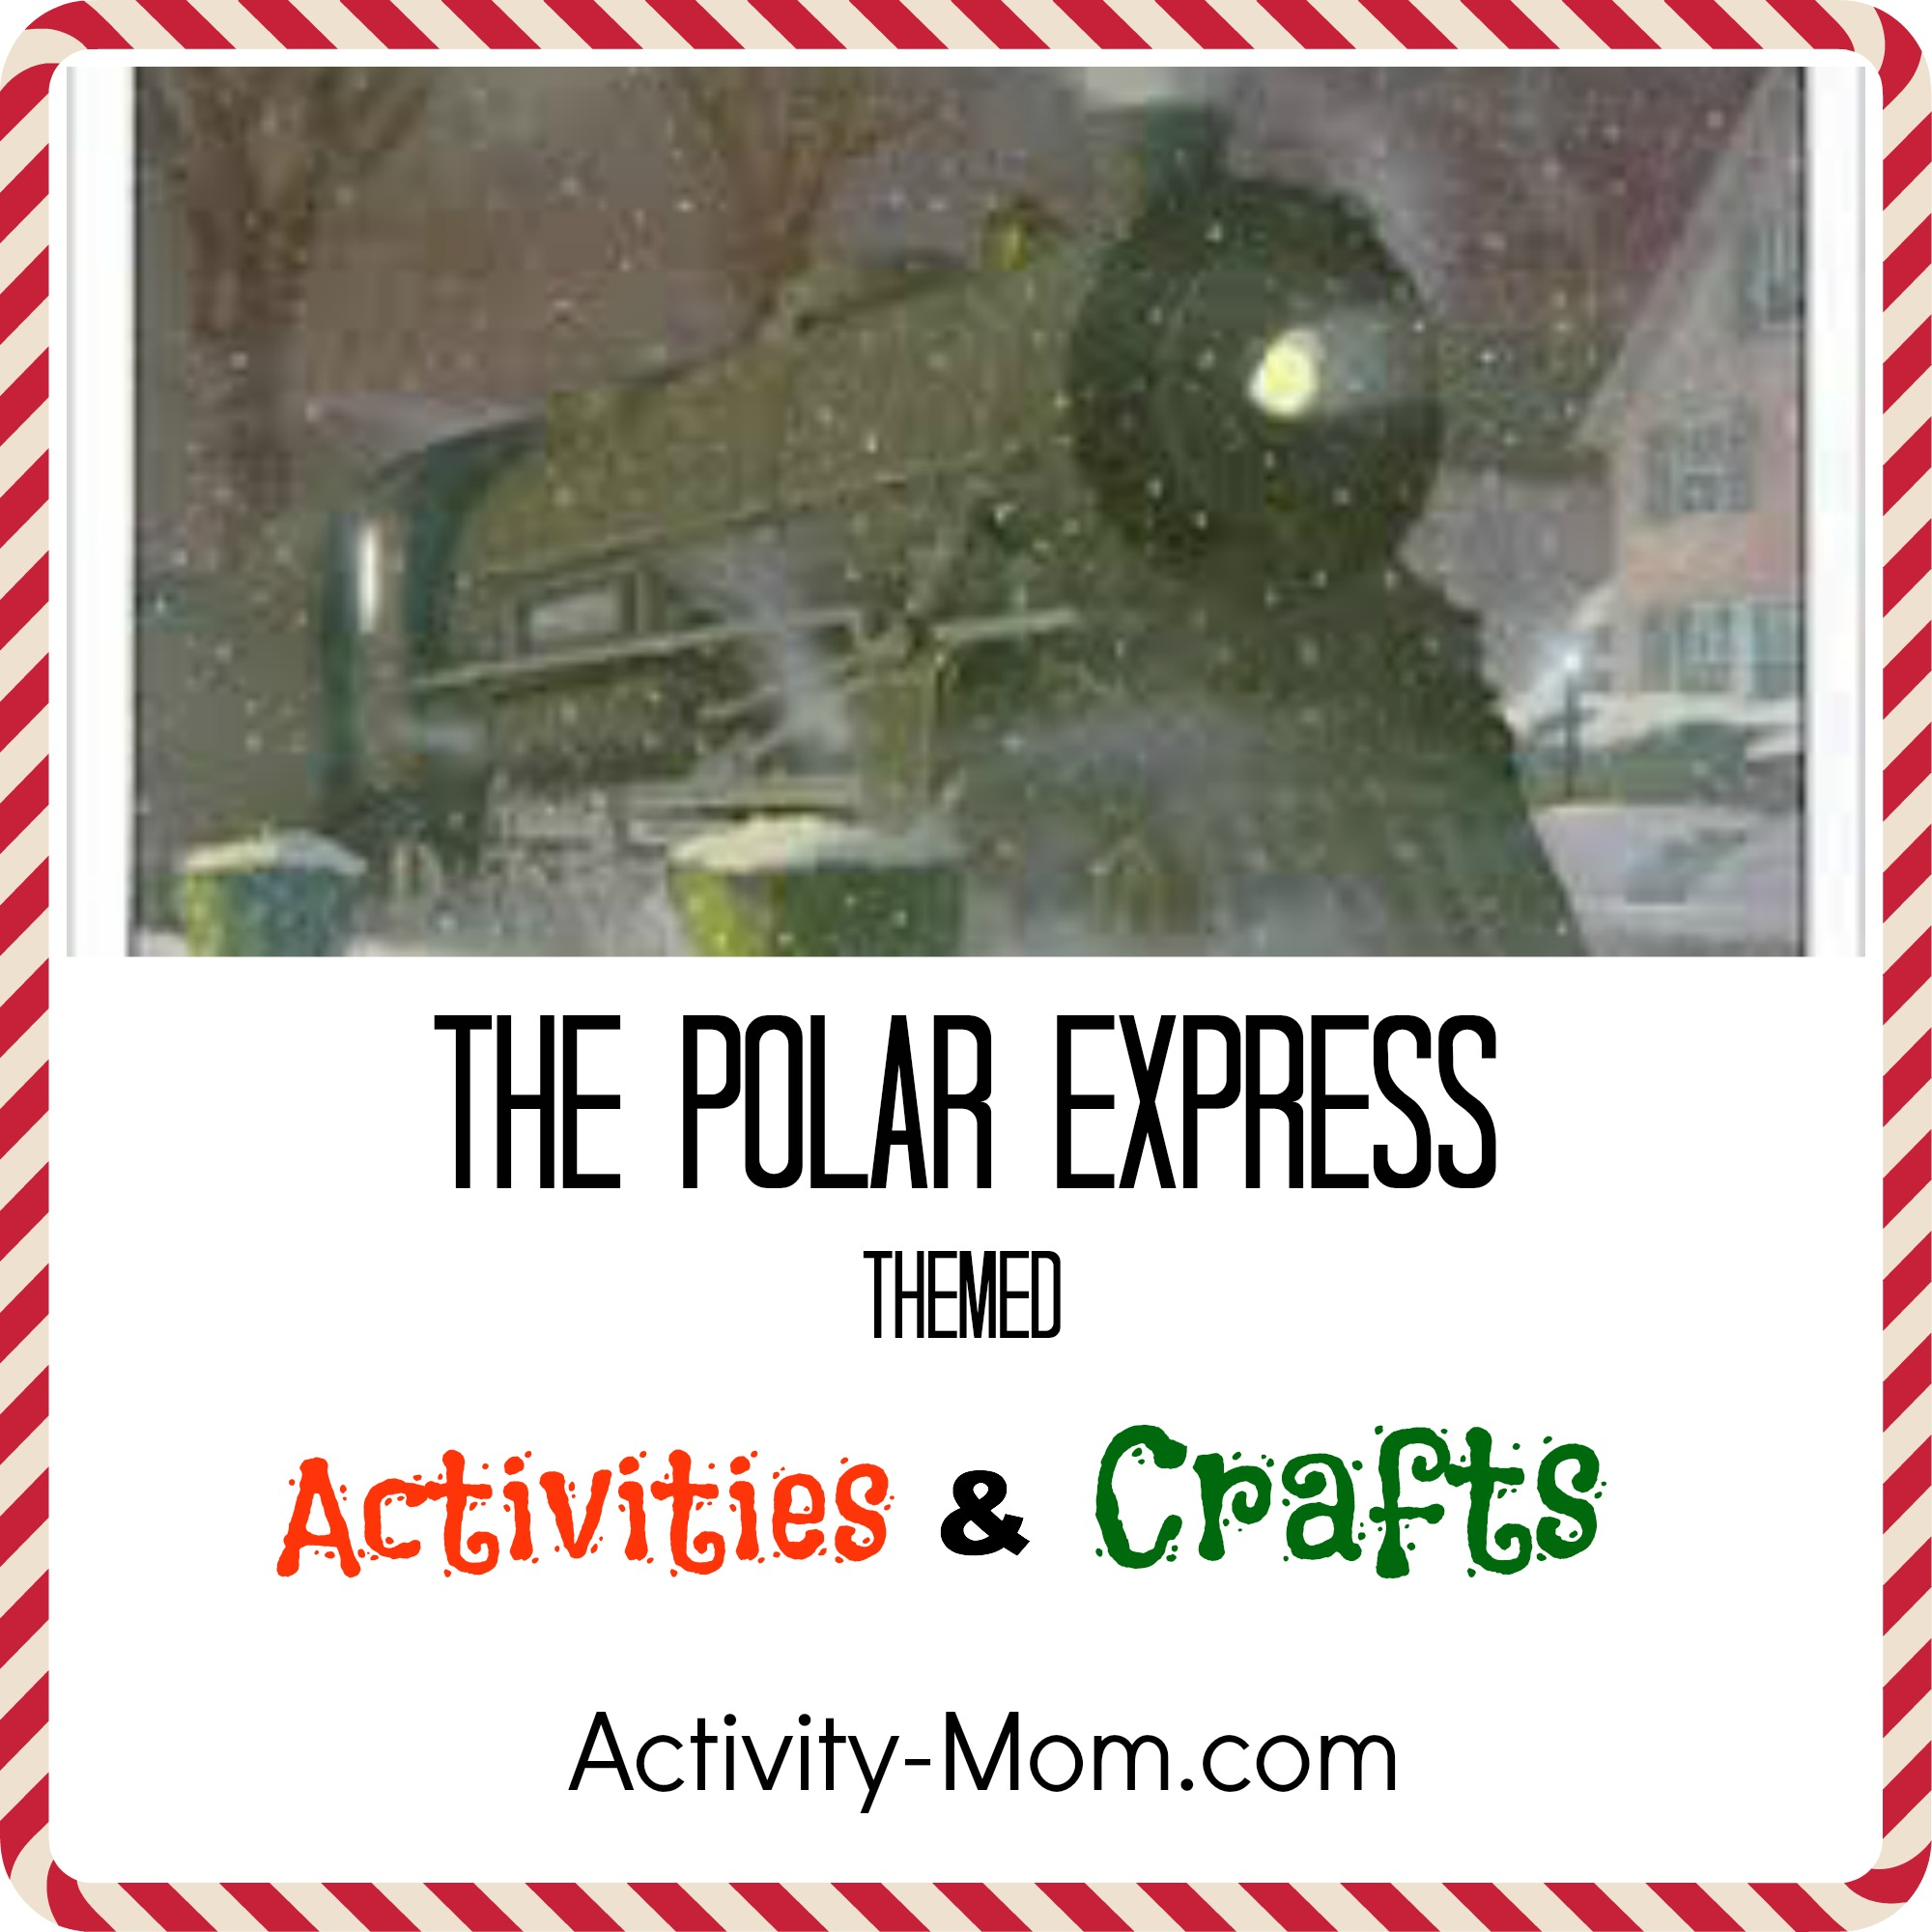 math worksheet : polar express themed activities  the activity mom : Polar Express Math Worksheets